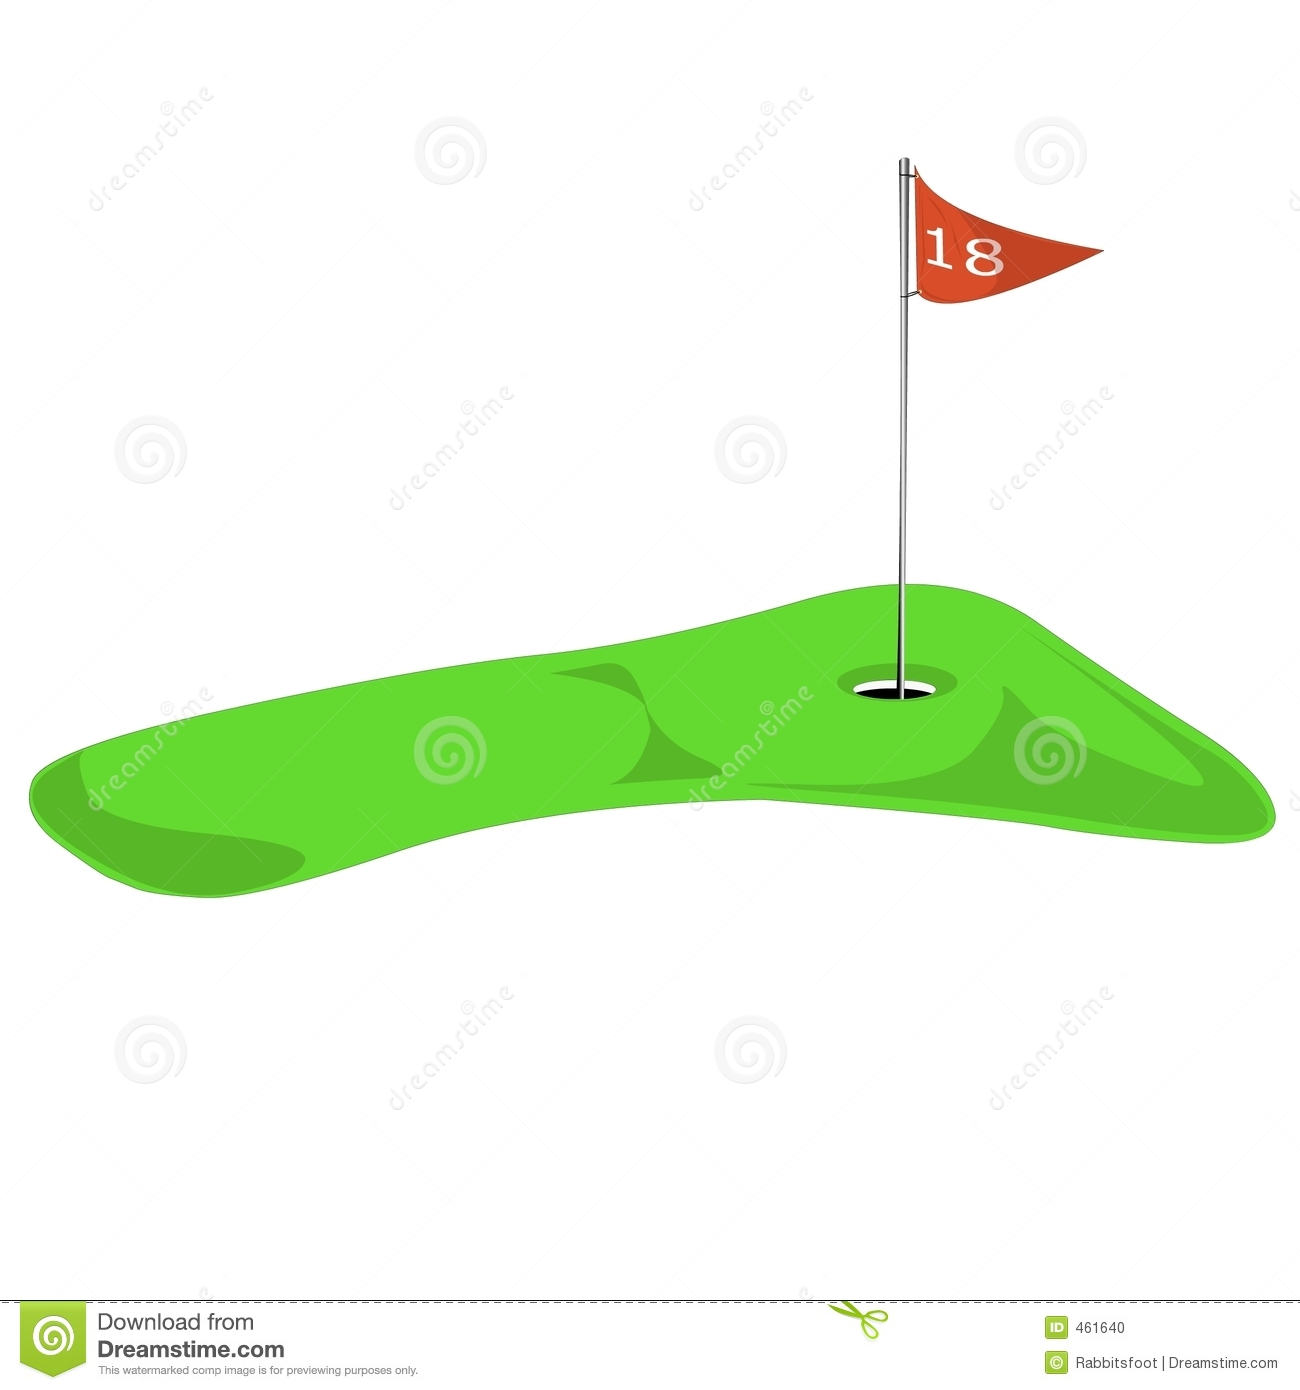 Golf green with flag on 18th.